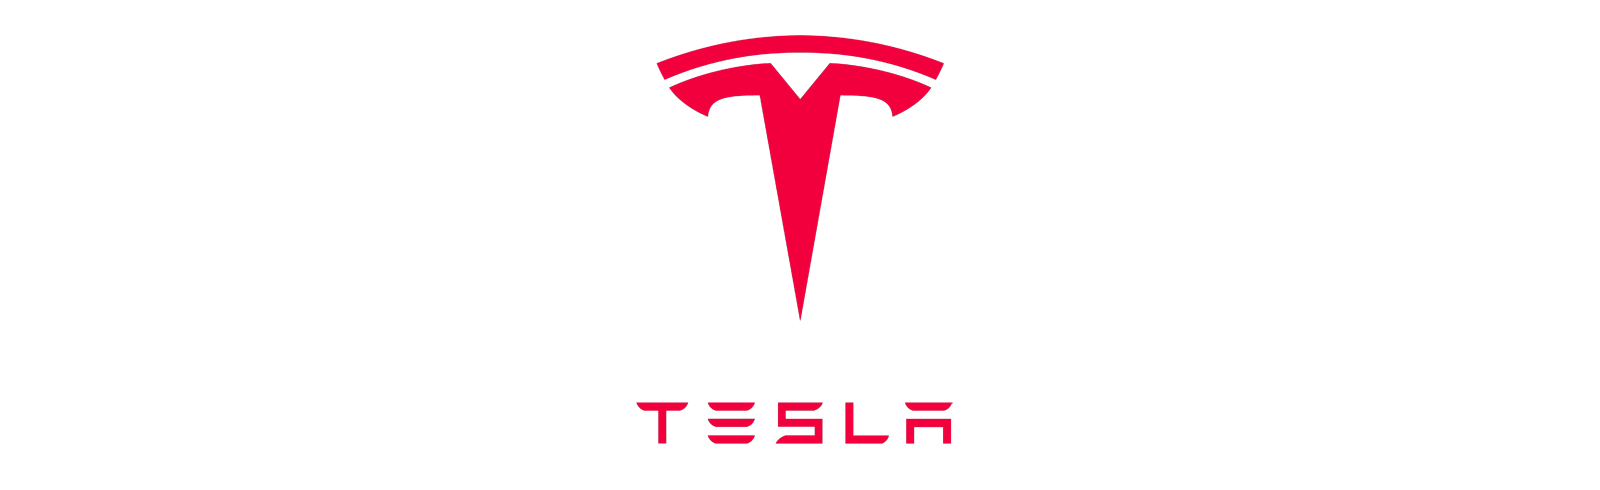 Tesla's Q3 2019 financial results will be announced on October 23rd